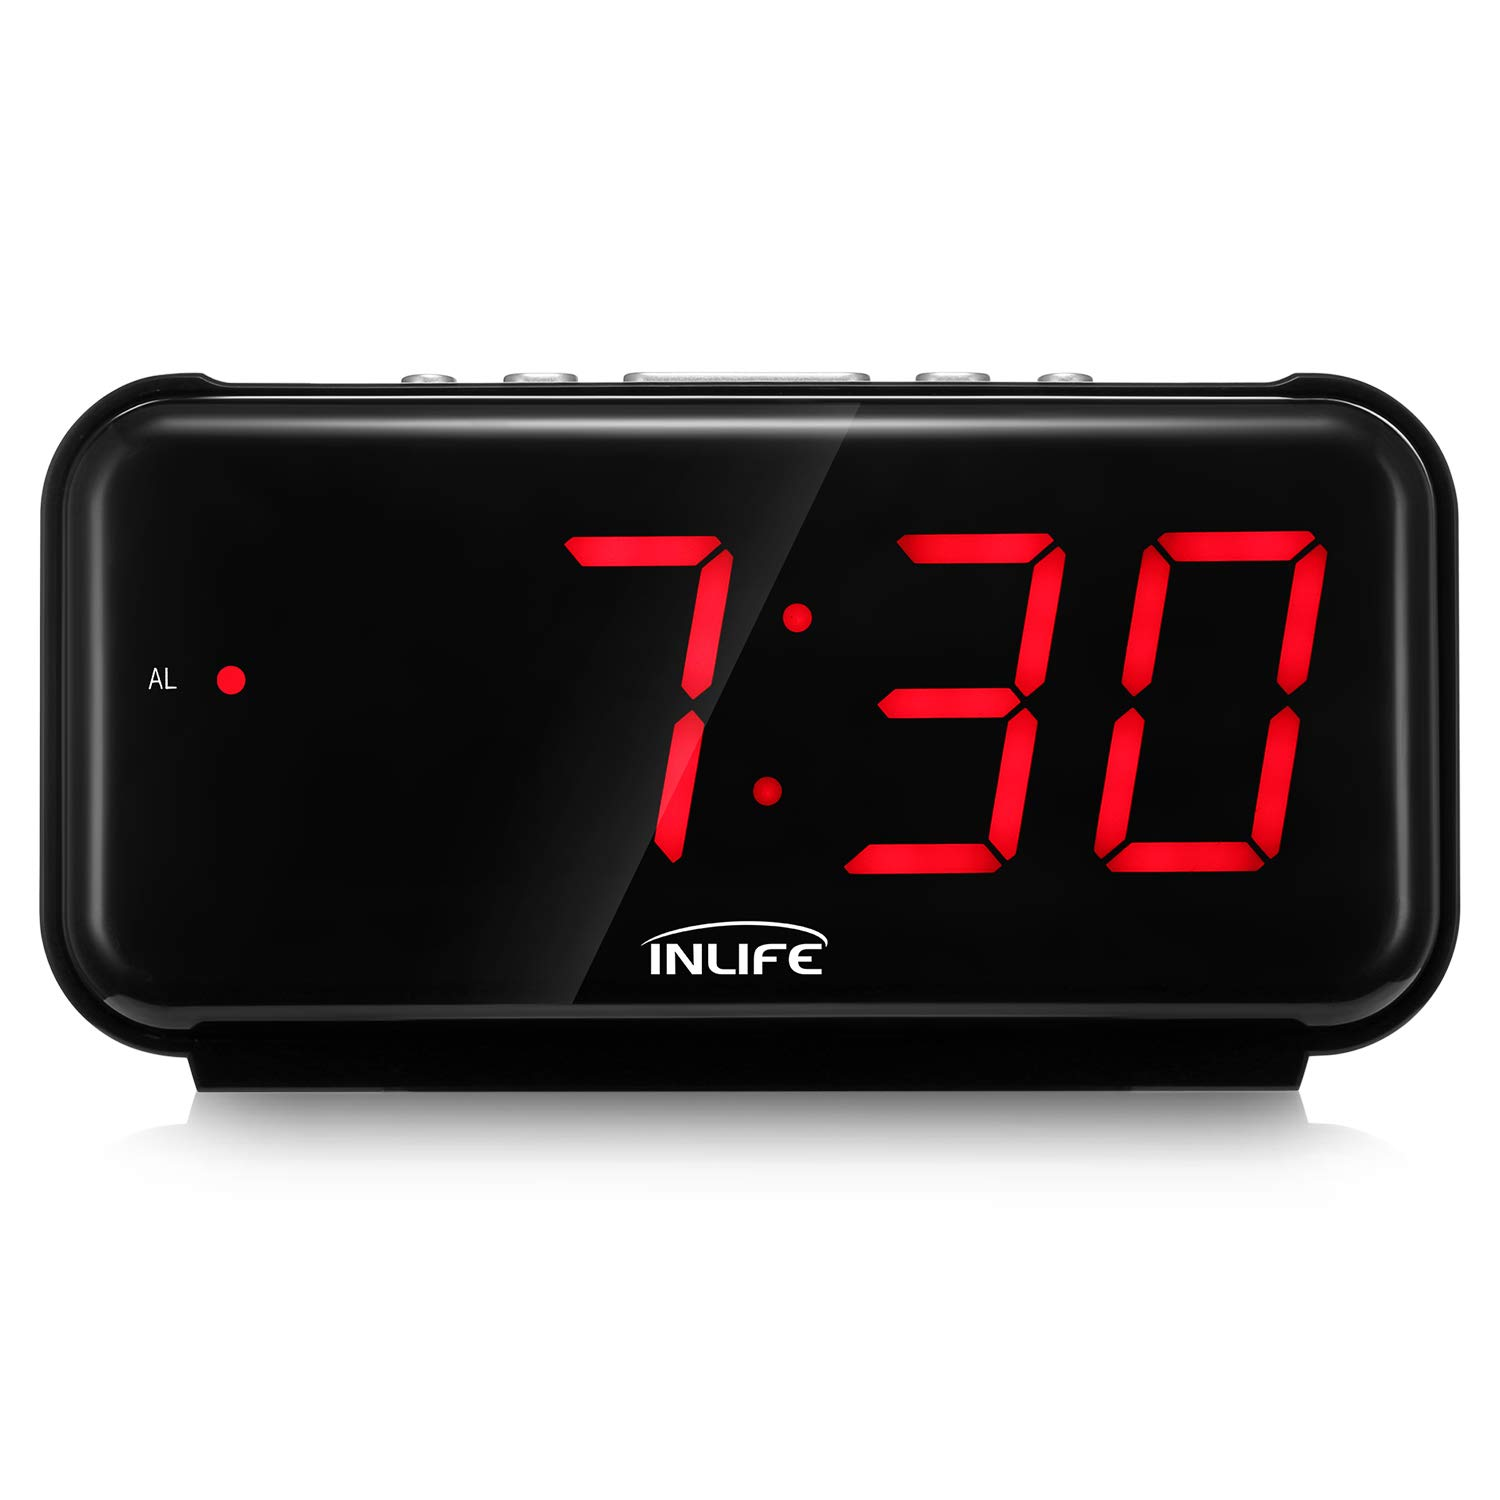 INLIFE Digital Alarm Clock Easy Use Clock with 6 7'' Large LED Display,  Snooze Function, Battery Operated Bedside Desk Clock for Kids, Home,  Office,